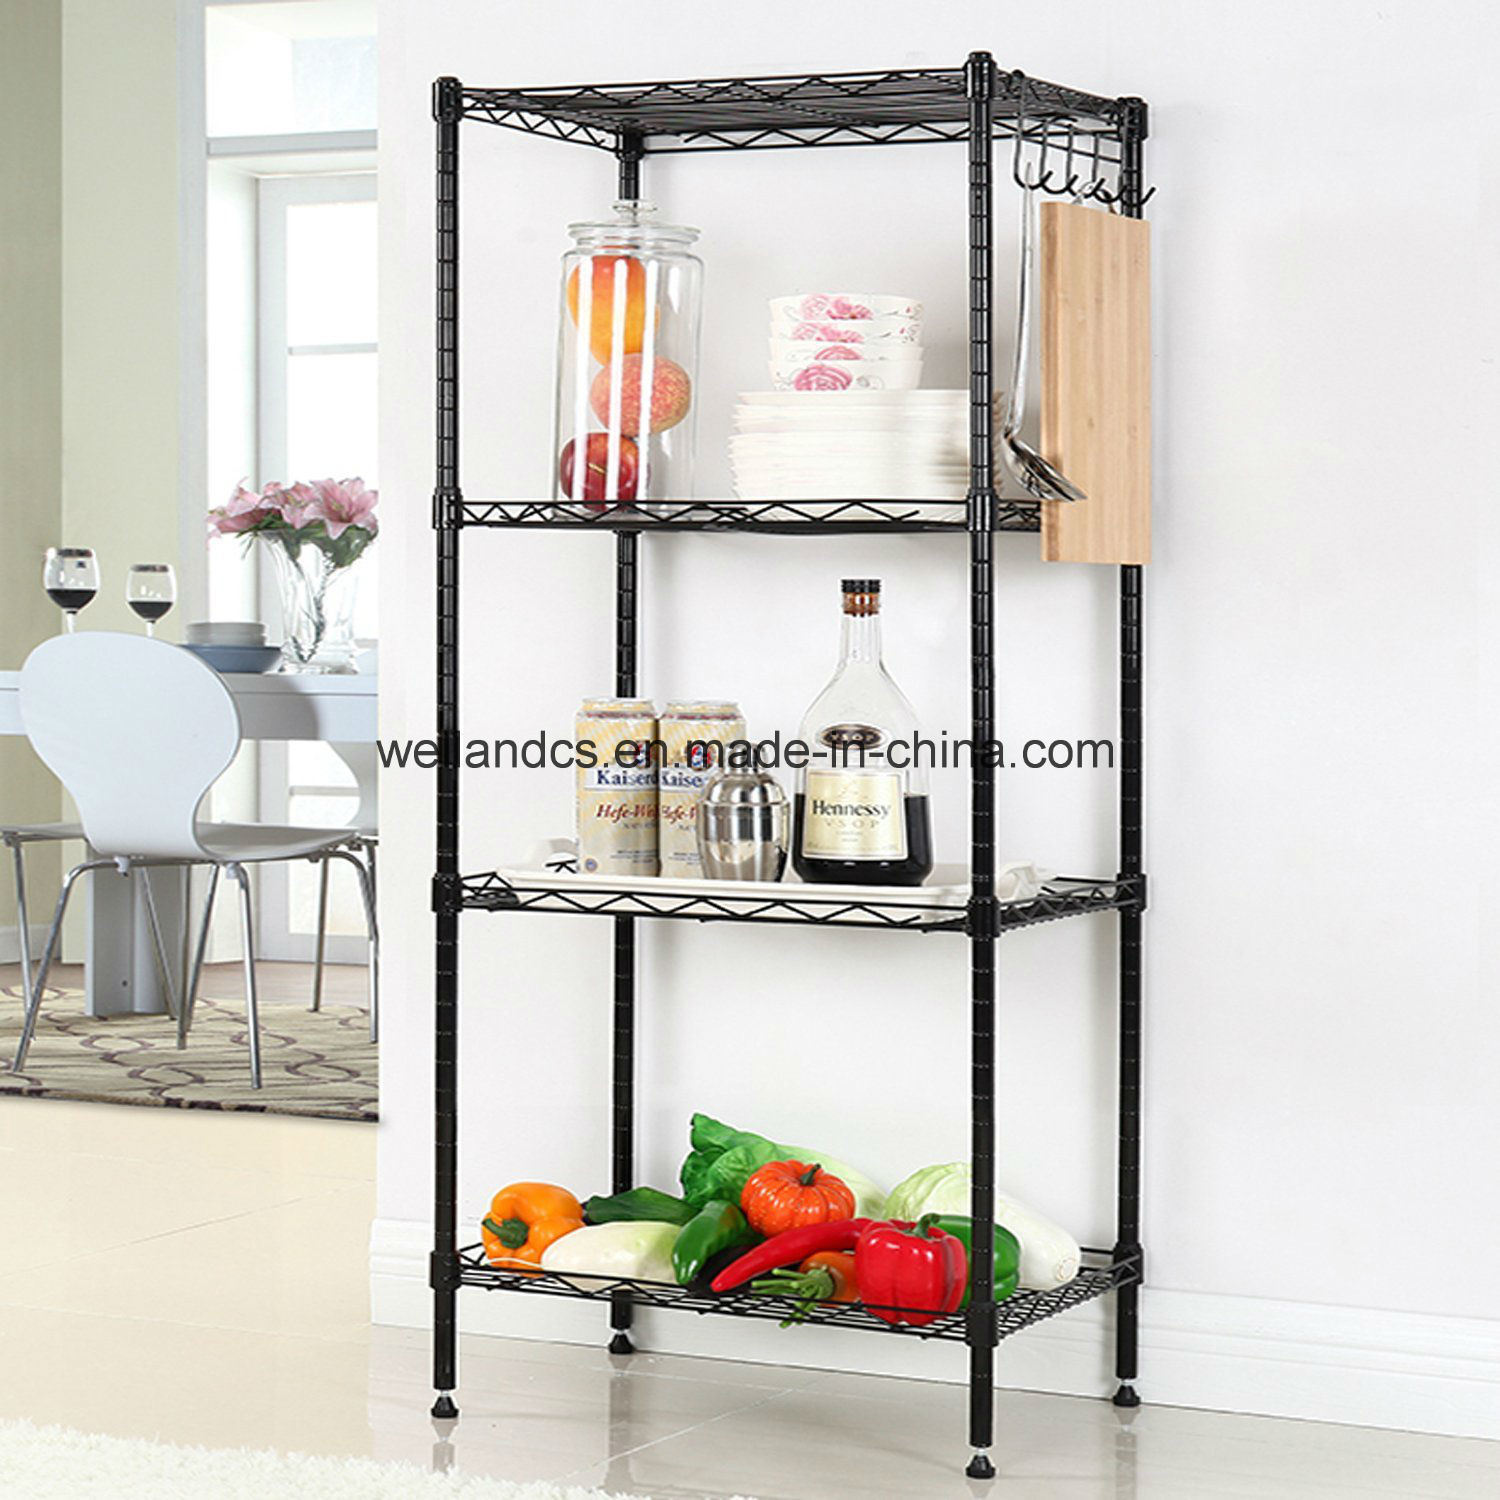 Hot Item Adjustable 4 Tier Powder Coated Black Wire Shelving Unit Kitchen Food Pantry Storage Shelf Accessories